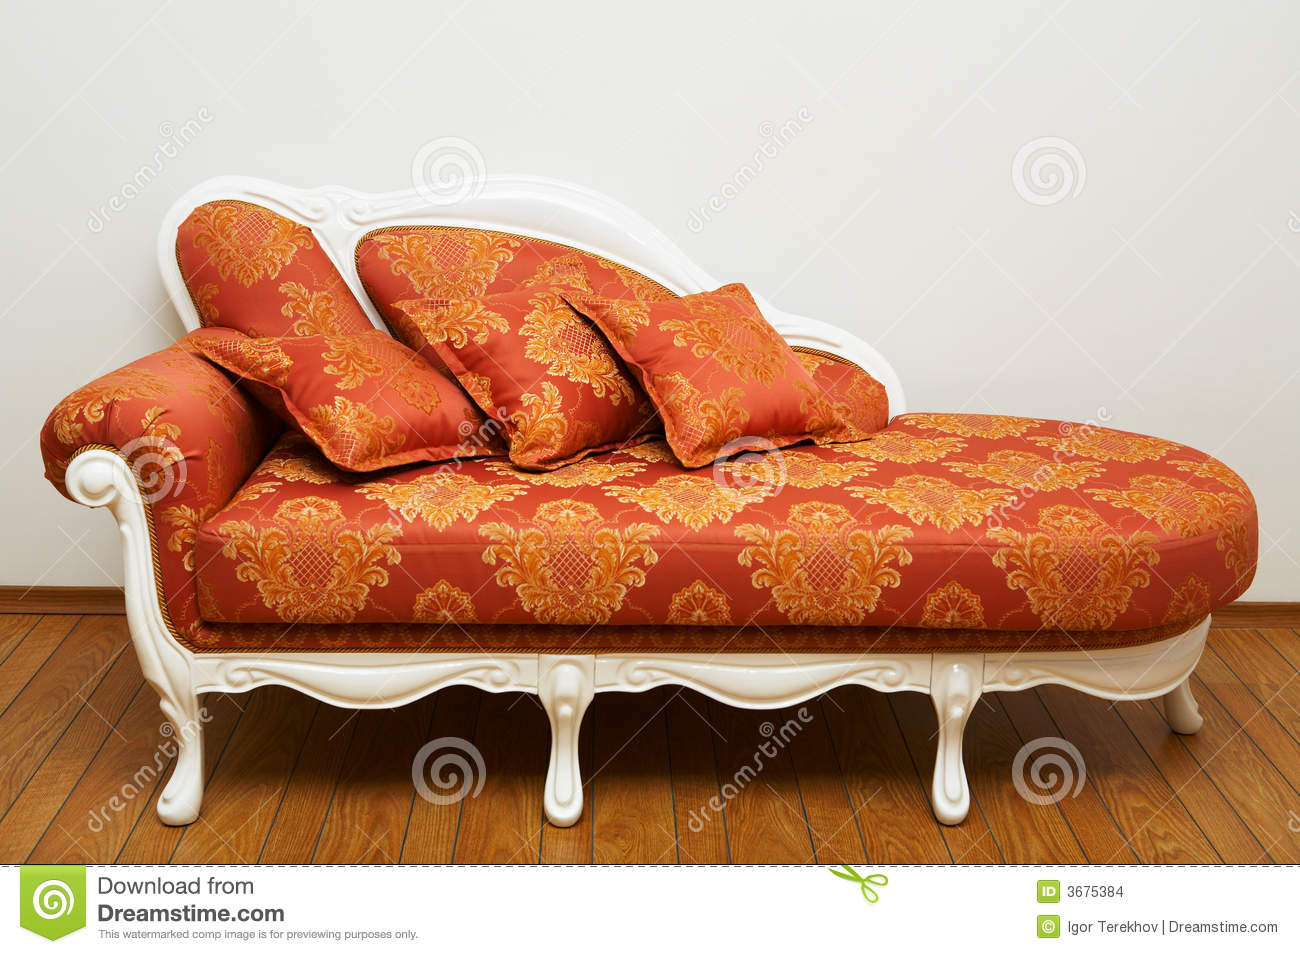 beautiful red sofa stock images - image: 3675384